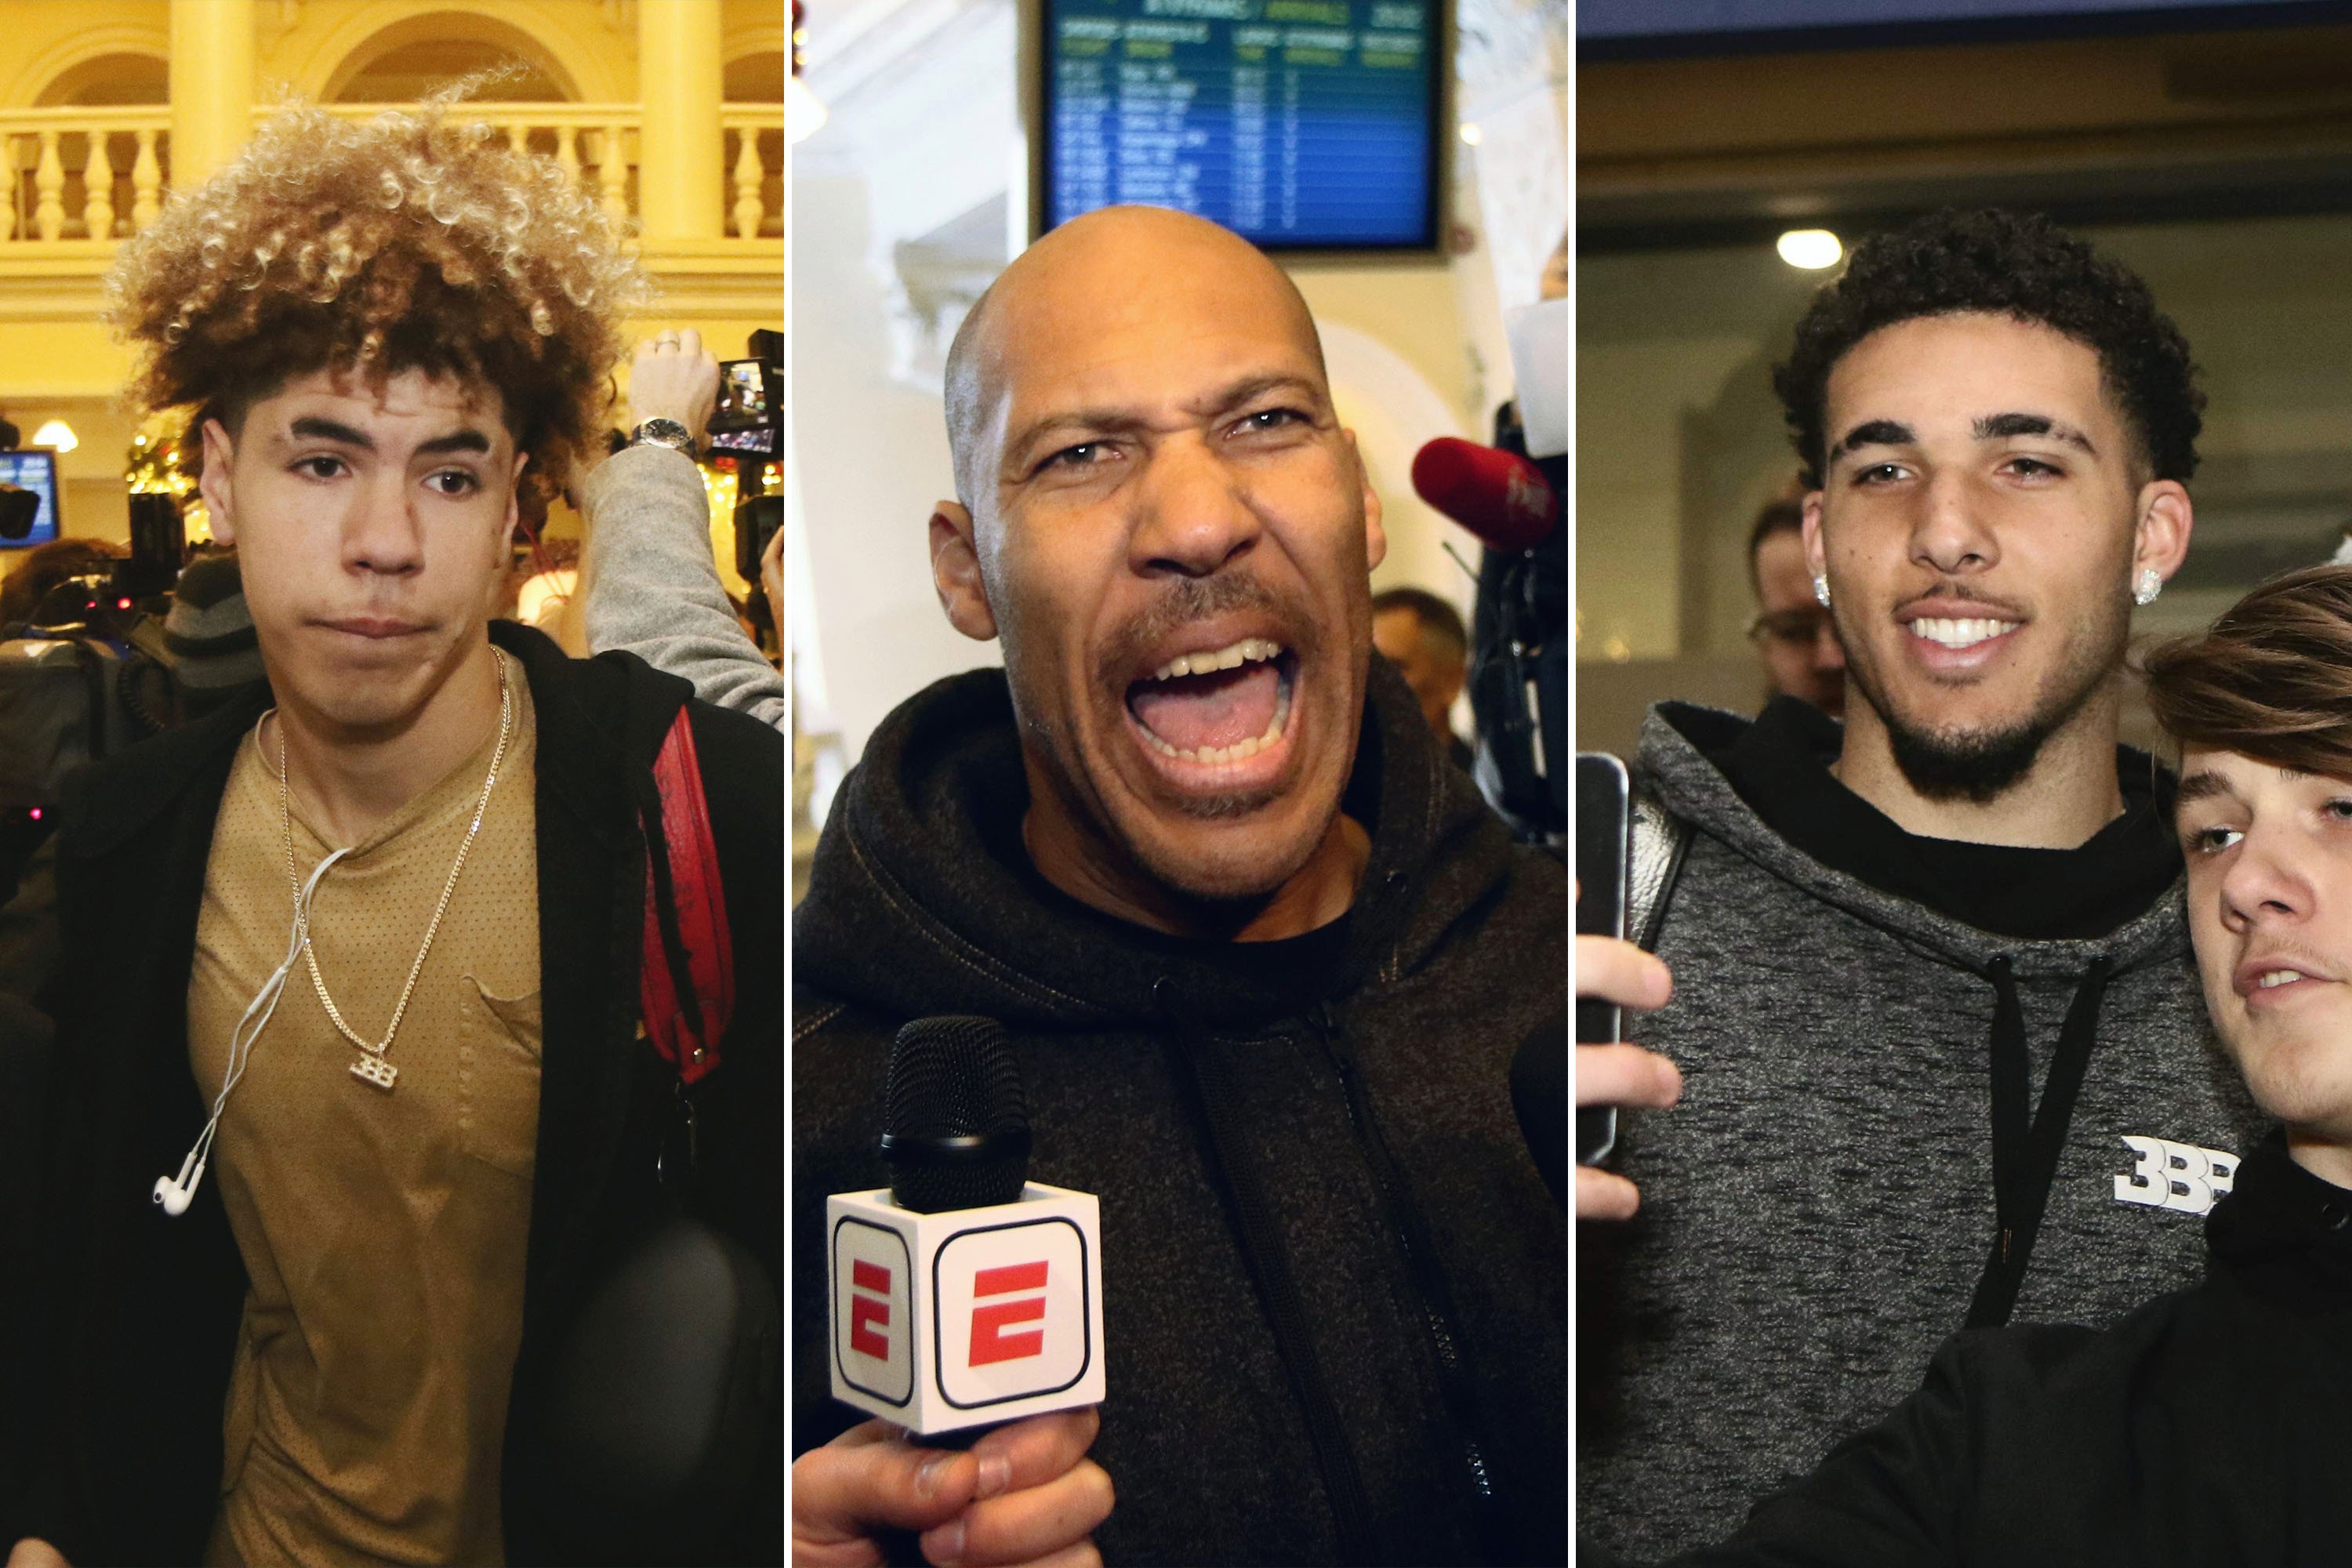 The LaVar Ball show arrives in Lithuania — to absolute mayhem